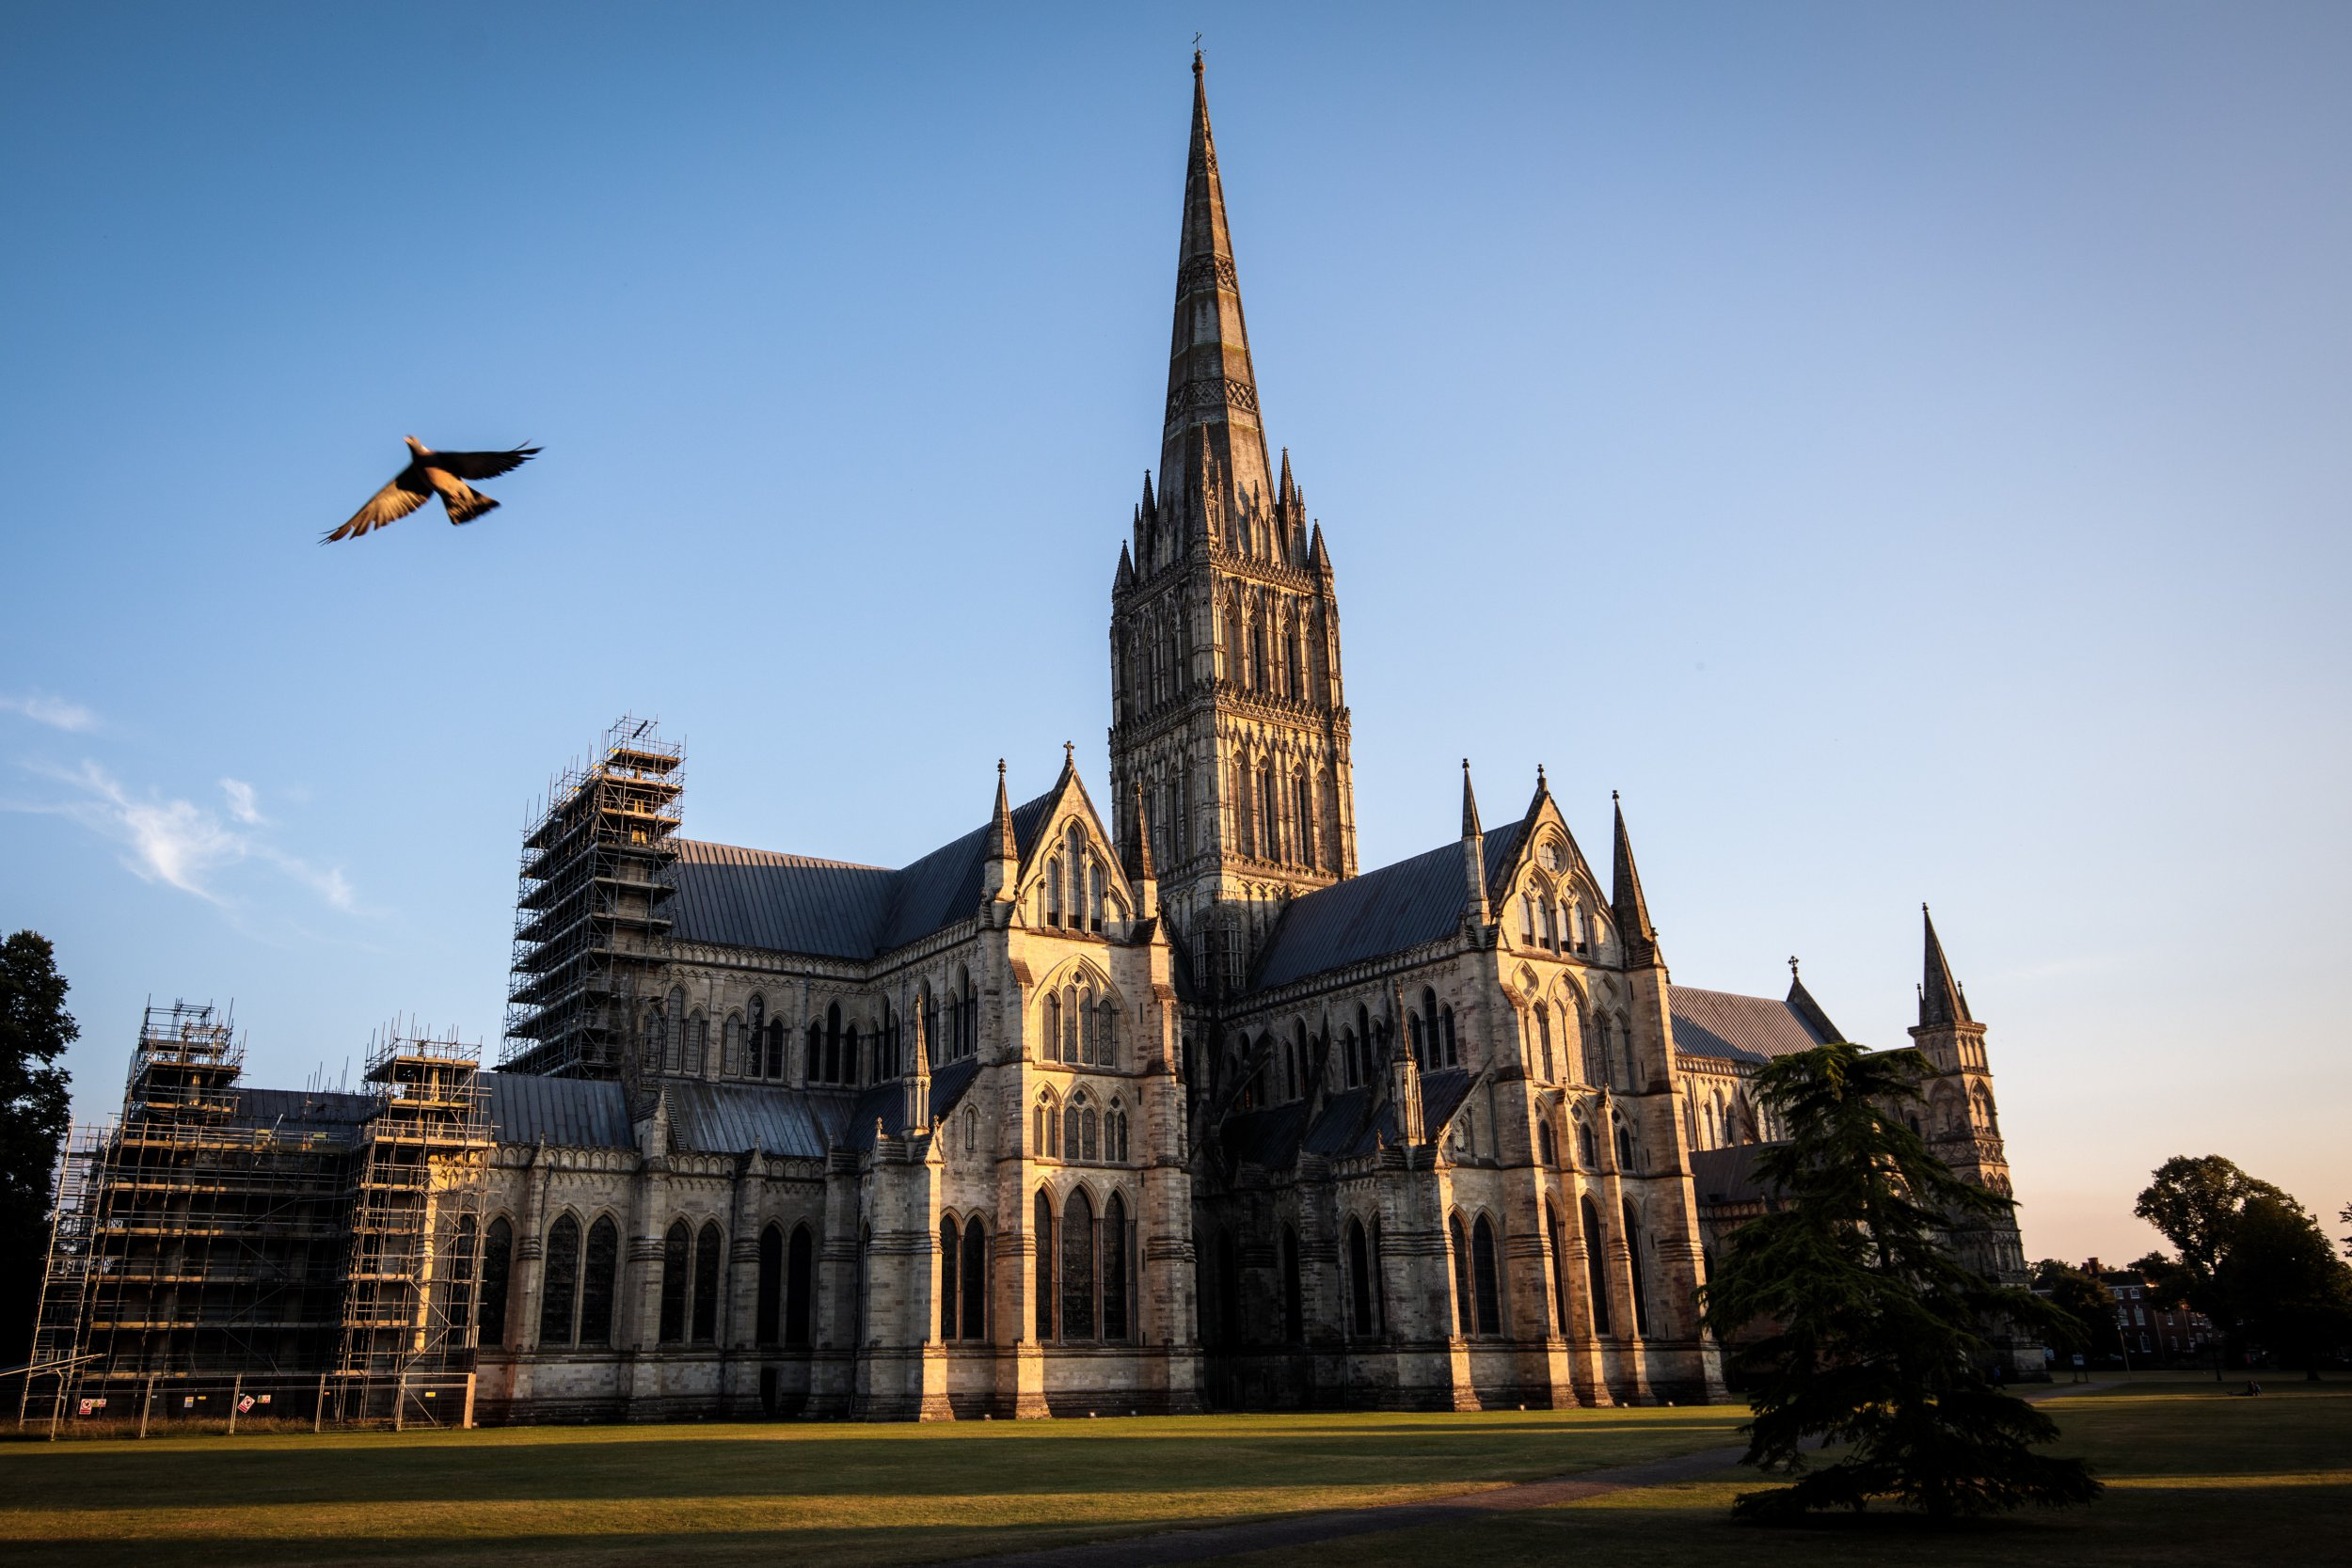 SALISBURY, ENGLAND - JULY 04: A pigeon flies past Salisbury Cathedral as the sun sets on July 4, 2018 in Salisbury, England. A man and woman in their 40s are in a critical condition after being found unconscious at an address in Muggleton Road, Amesbury. The town is around 10 miles from Salisbury where former Russian spy Sergei Skripal and his daughter Yulia were poisoned in a suspected nerve agent attack. (Photo by Jack Taylor/Getty Images)